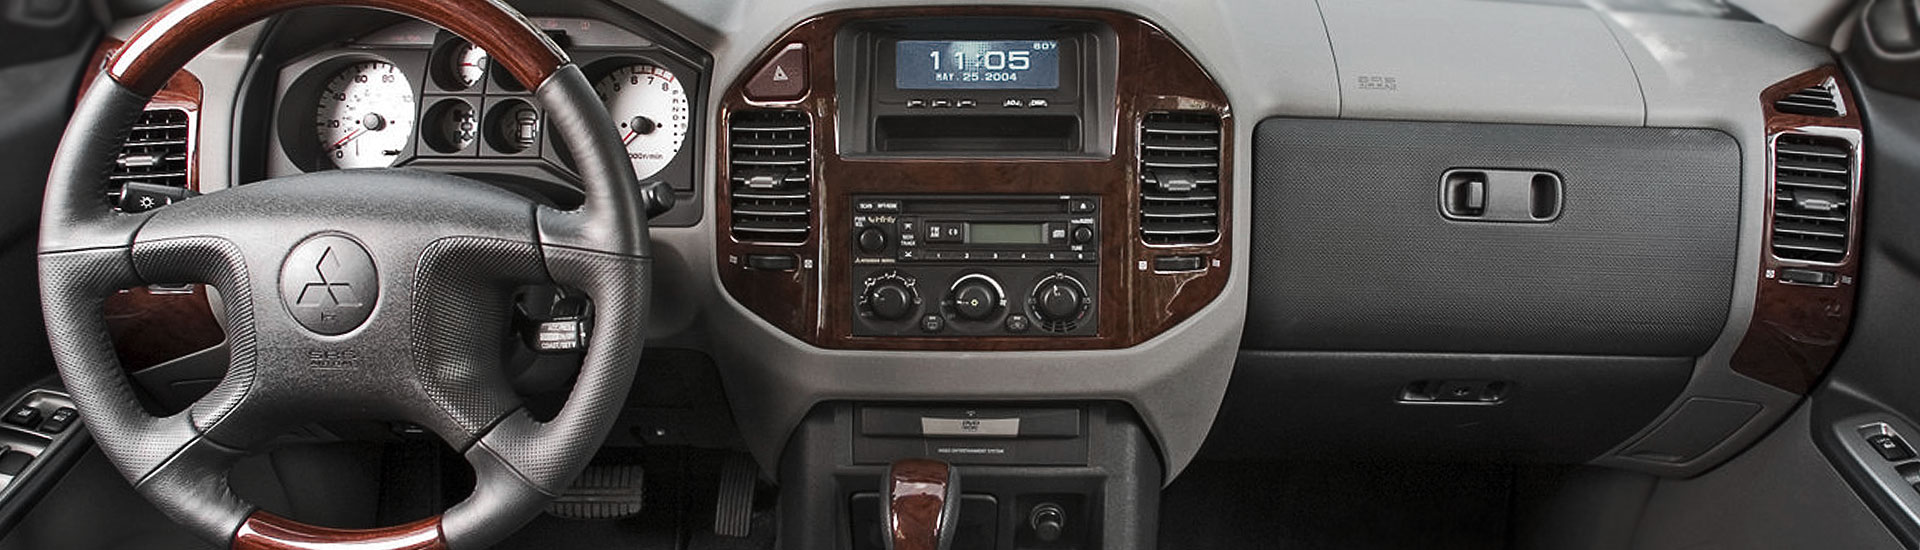 2012 Mitsubishi Outlander Custom Dash Kits